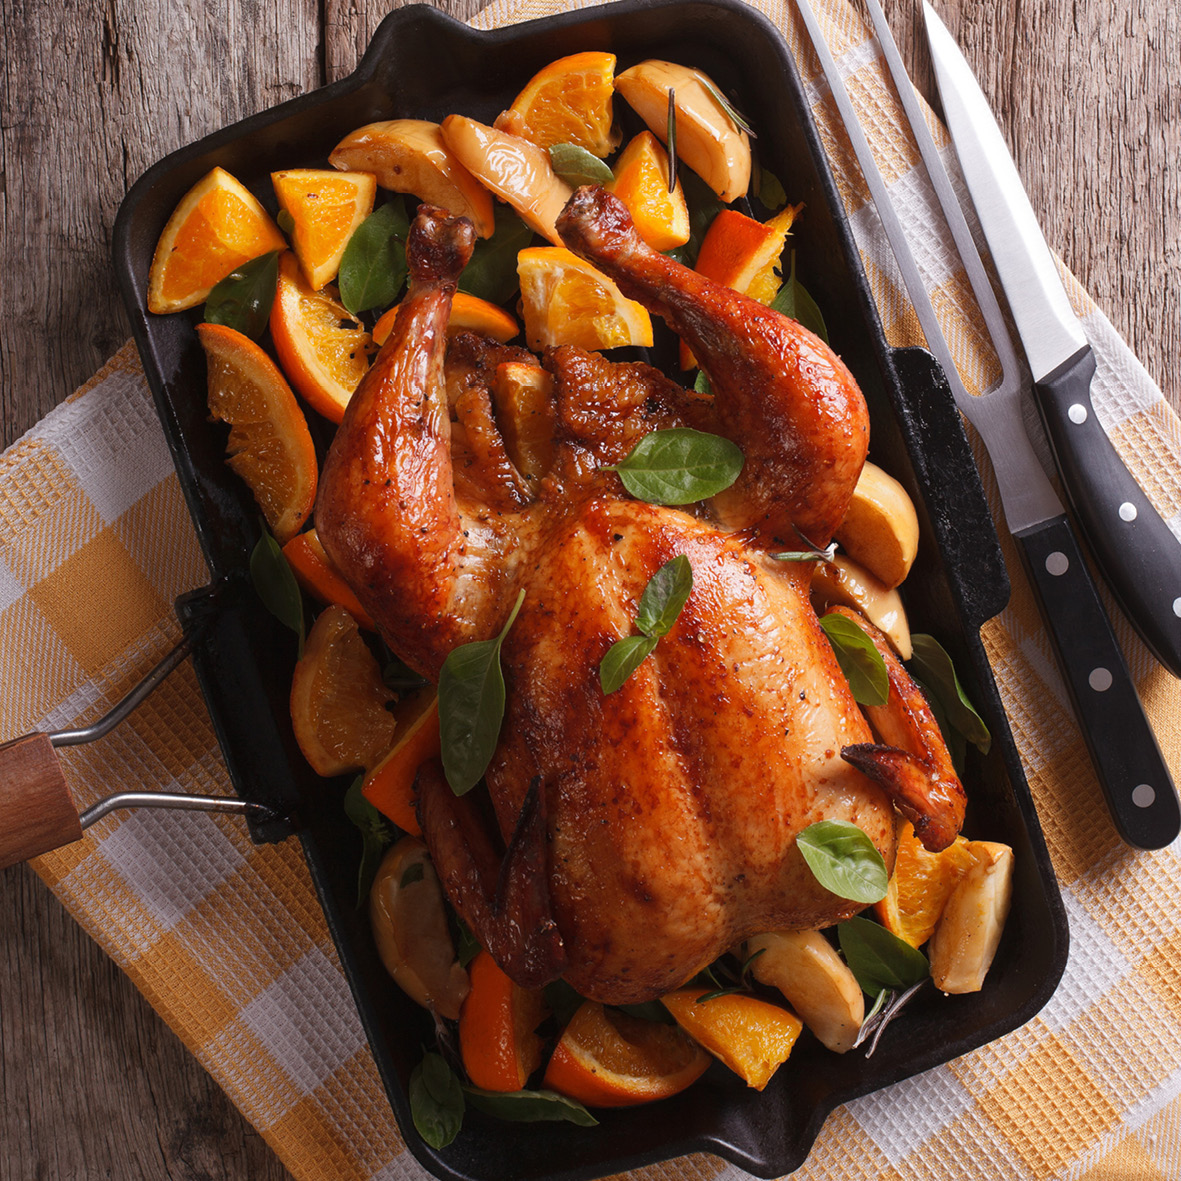 Herb_and_orange_roasted_chicken.jpg